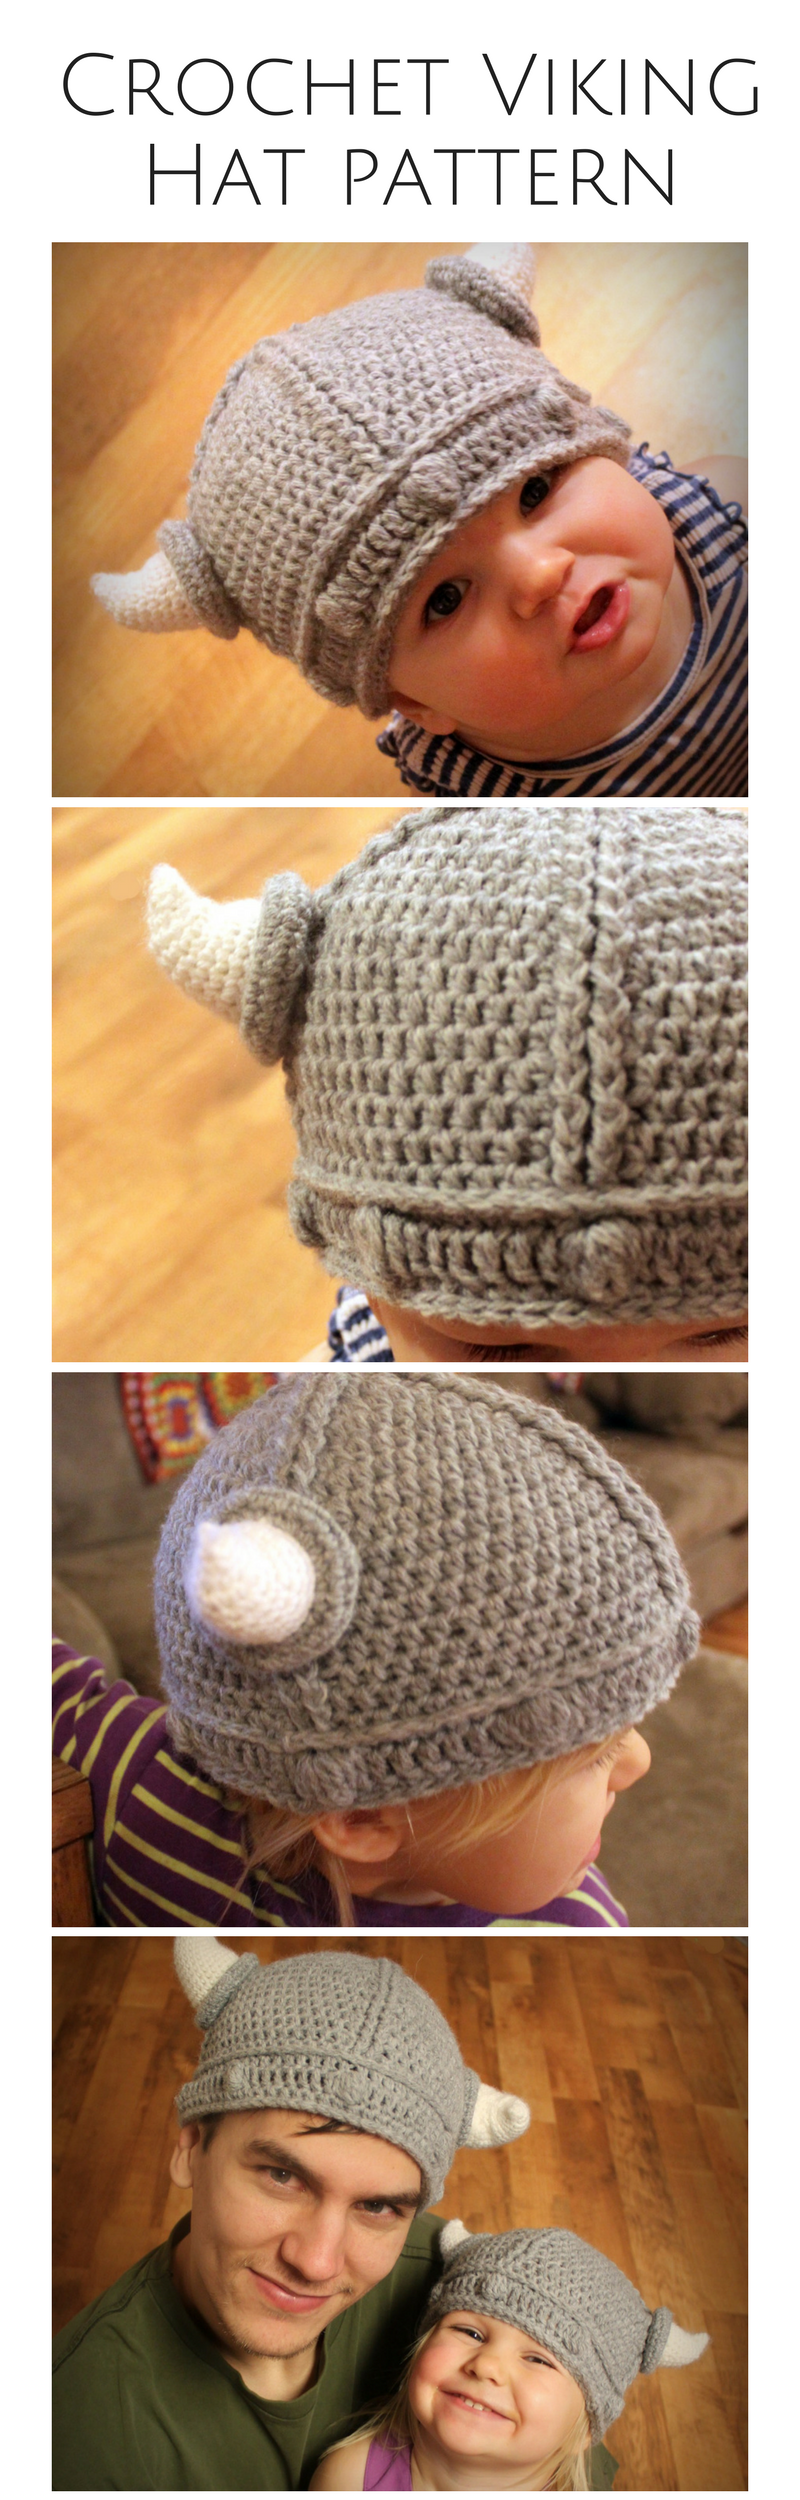 c5e9c94c66d Crochet viking hats! This pattern is just so cool and it s sized to fit  even adults! I love love love this. Afflink.